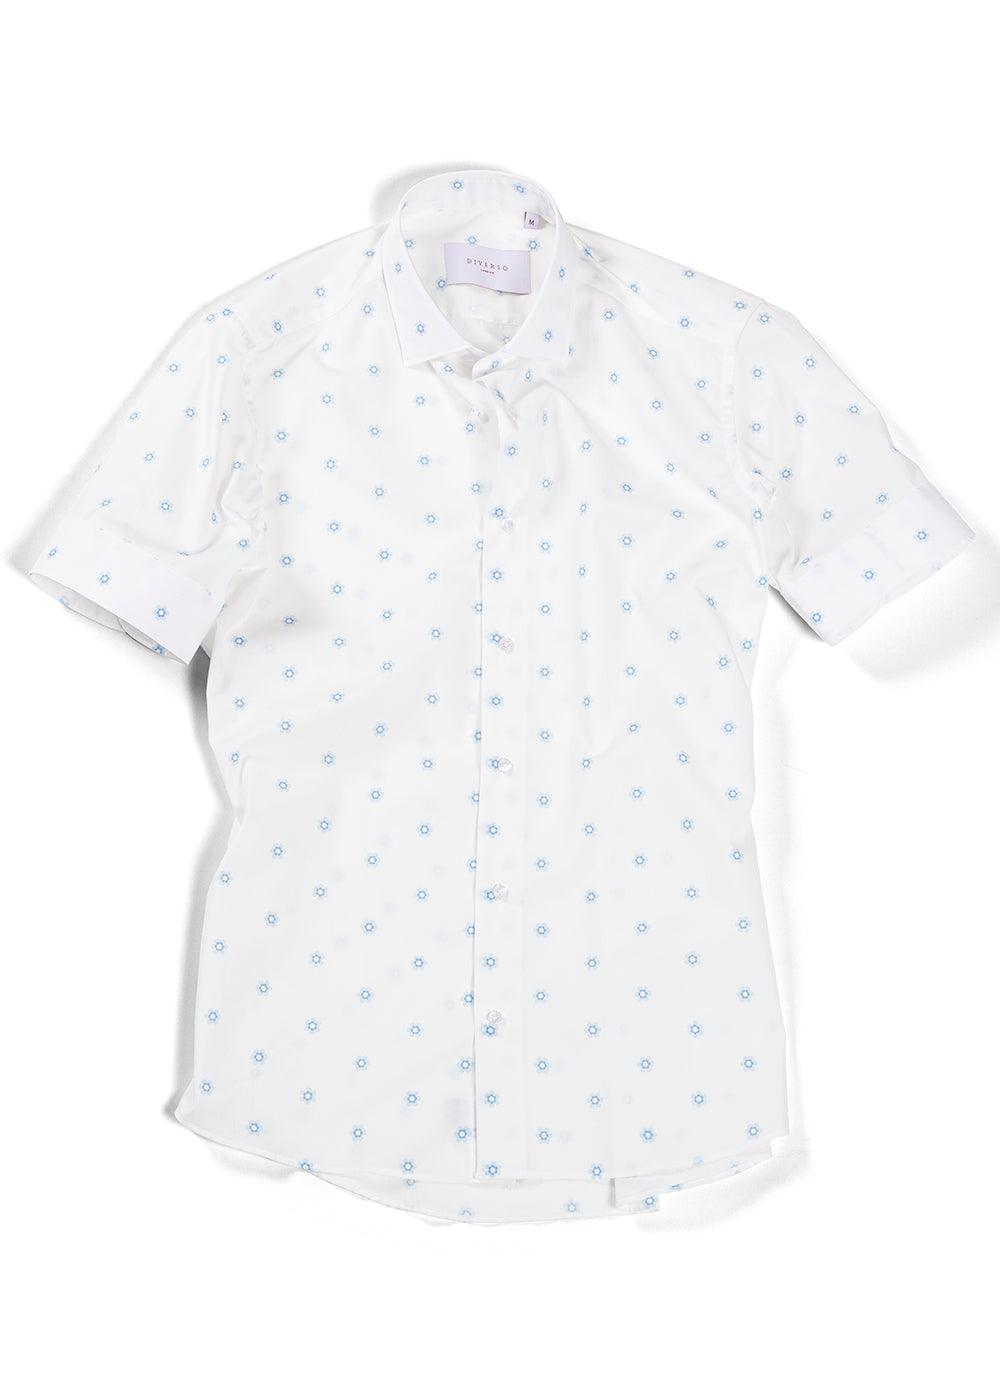 White Floral Print Short Sleeve Shirt